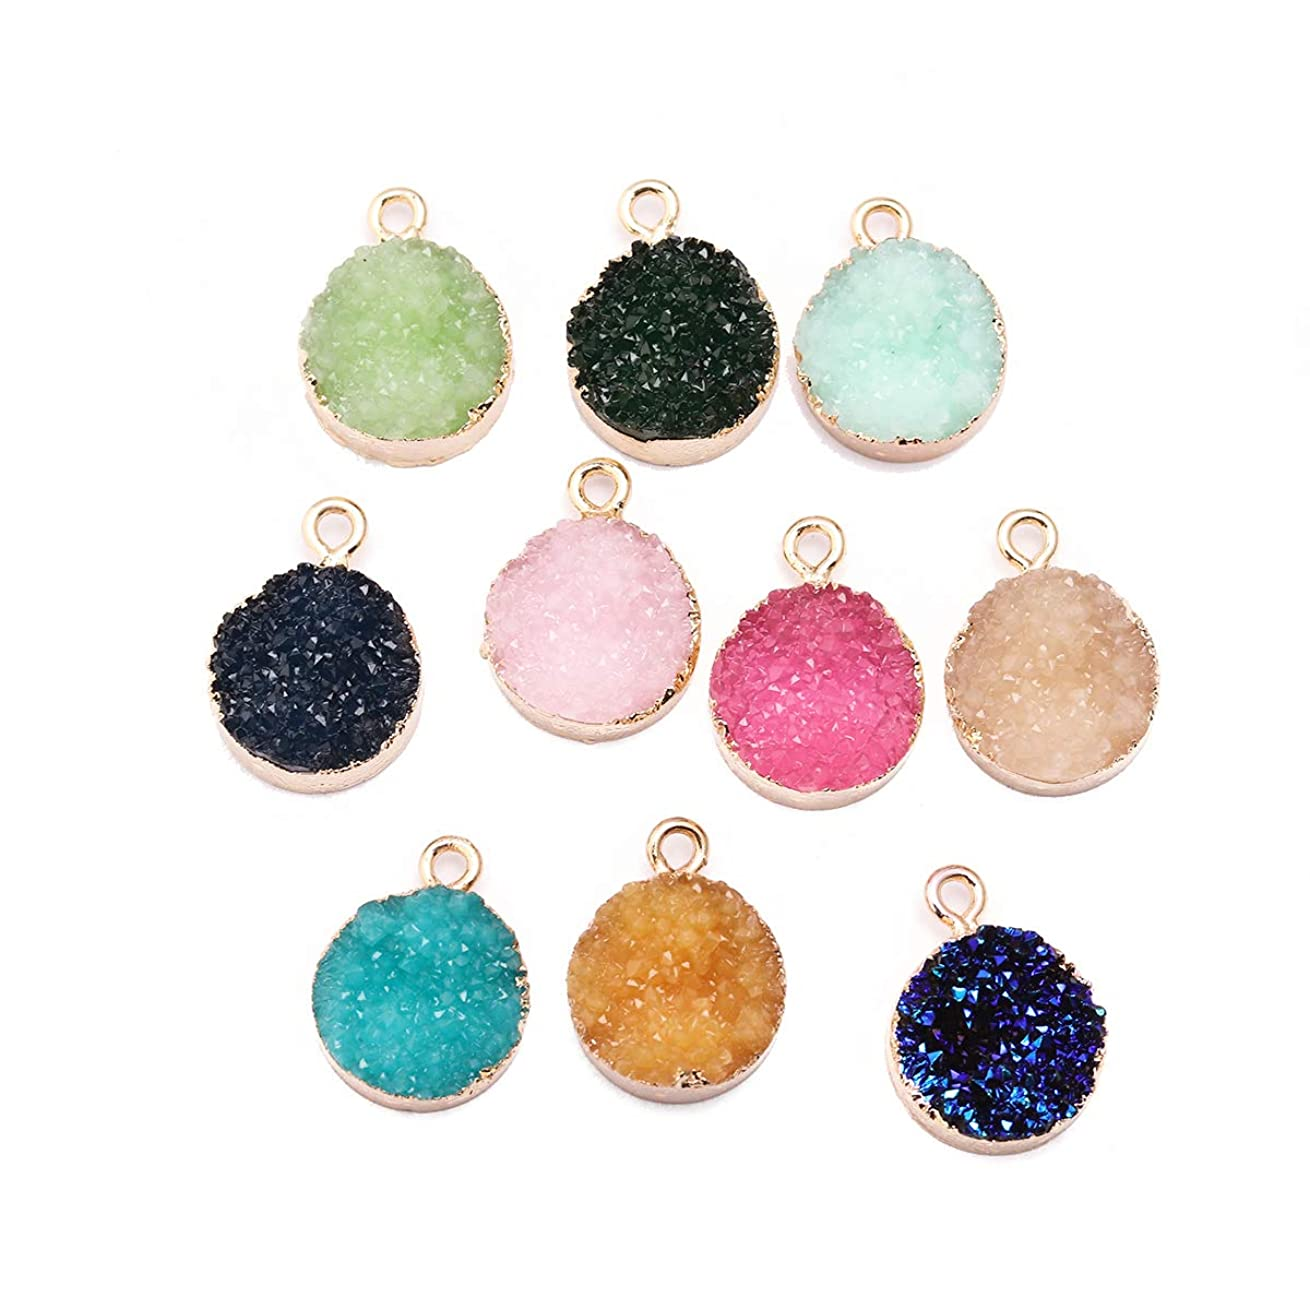 Tiparts 10pcs Faux Druzy Quartz Crystal Jewelry Pendants Round Resin Stones Fit for Charms Jewelry Bracelet Accessories (Round)